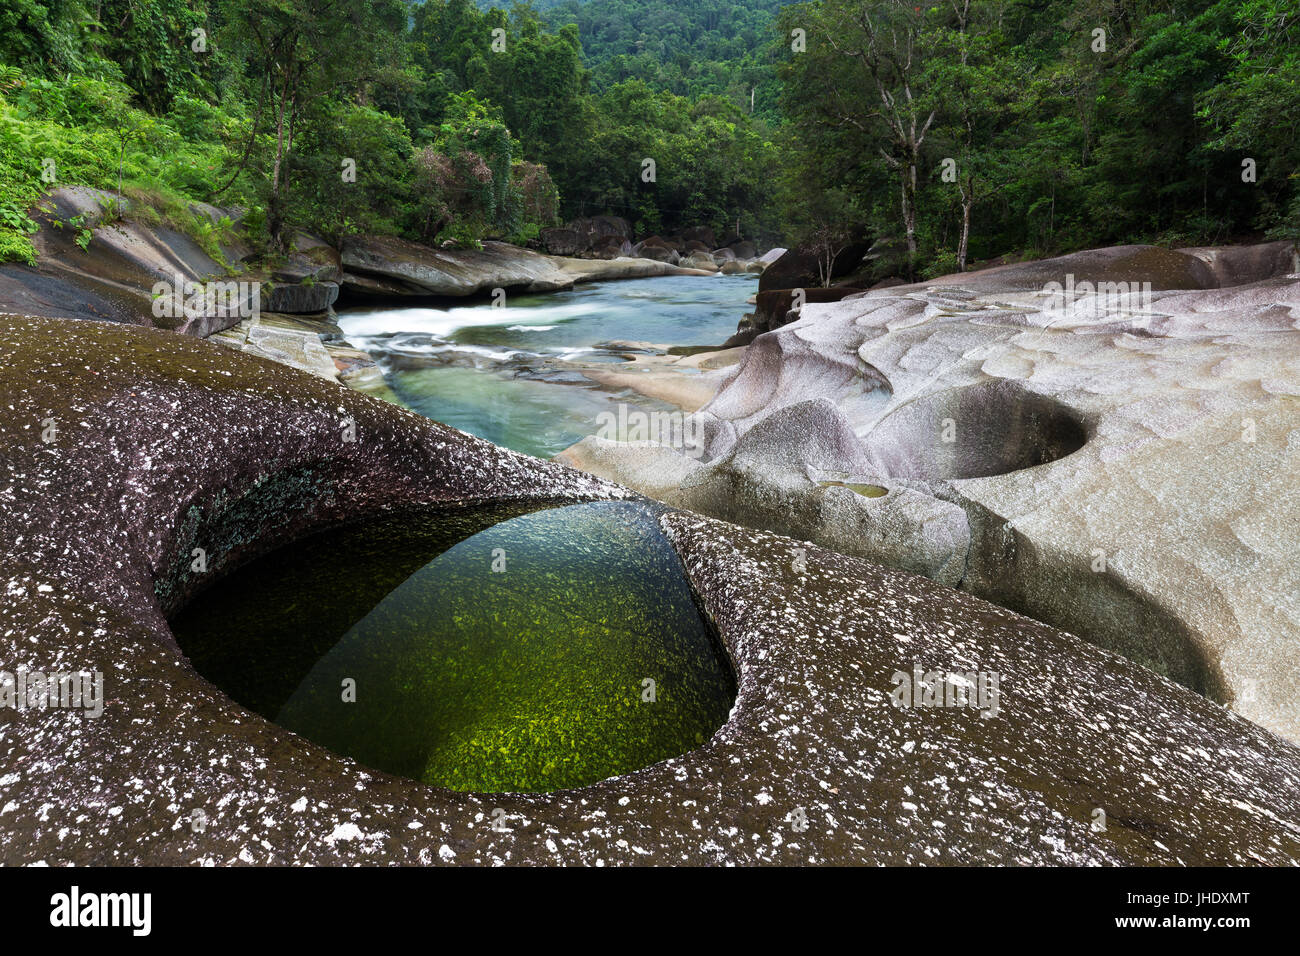 A clear emerald pool in granite rocks beside a river edged by lush tropical rainforest. - Stock Image